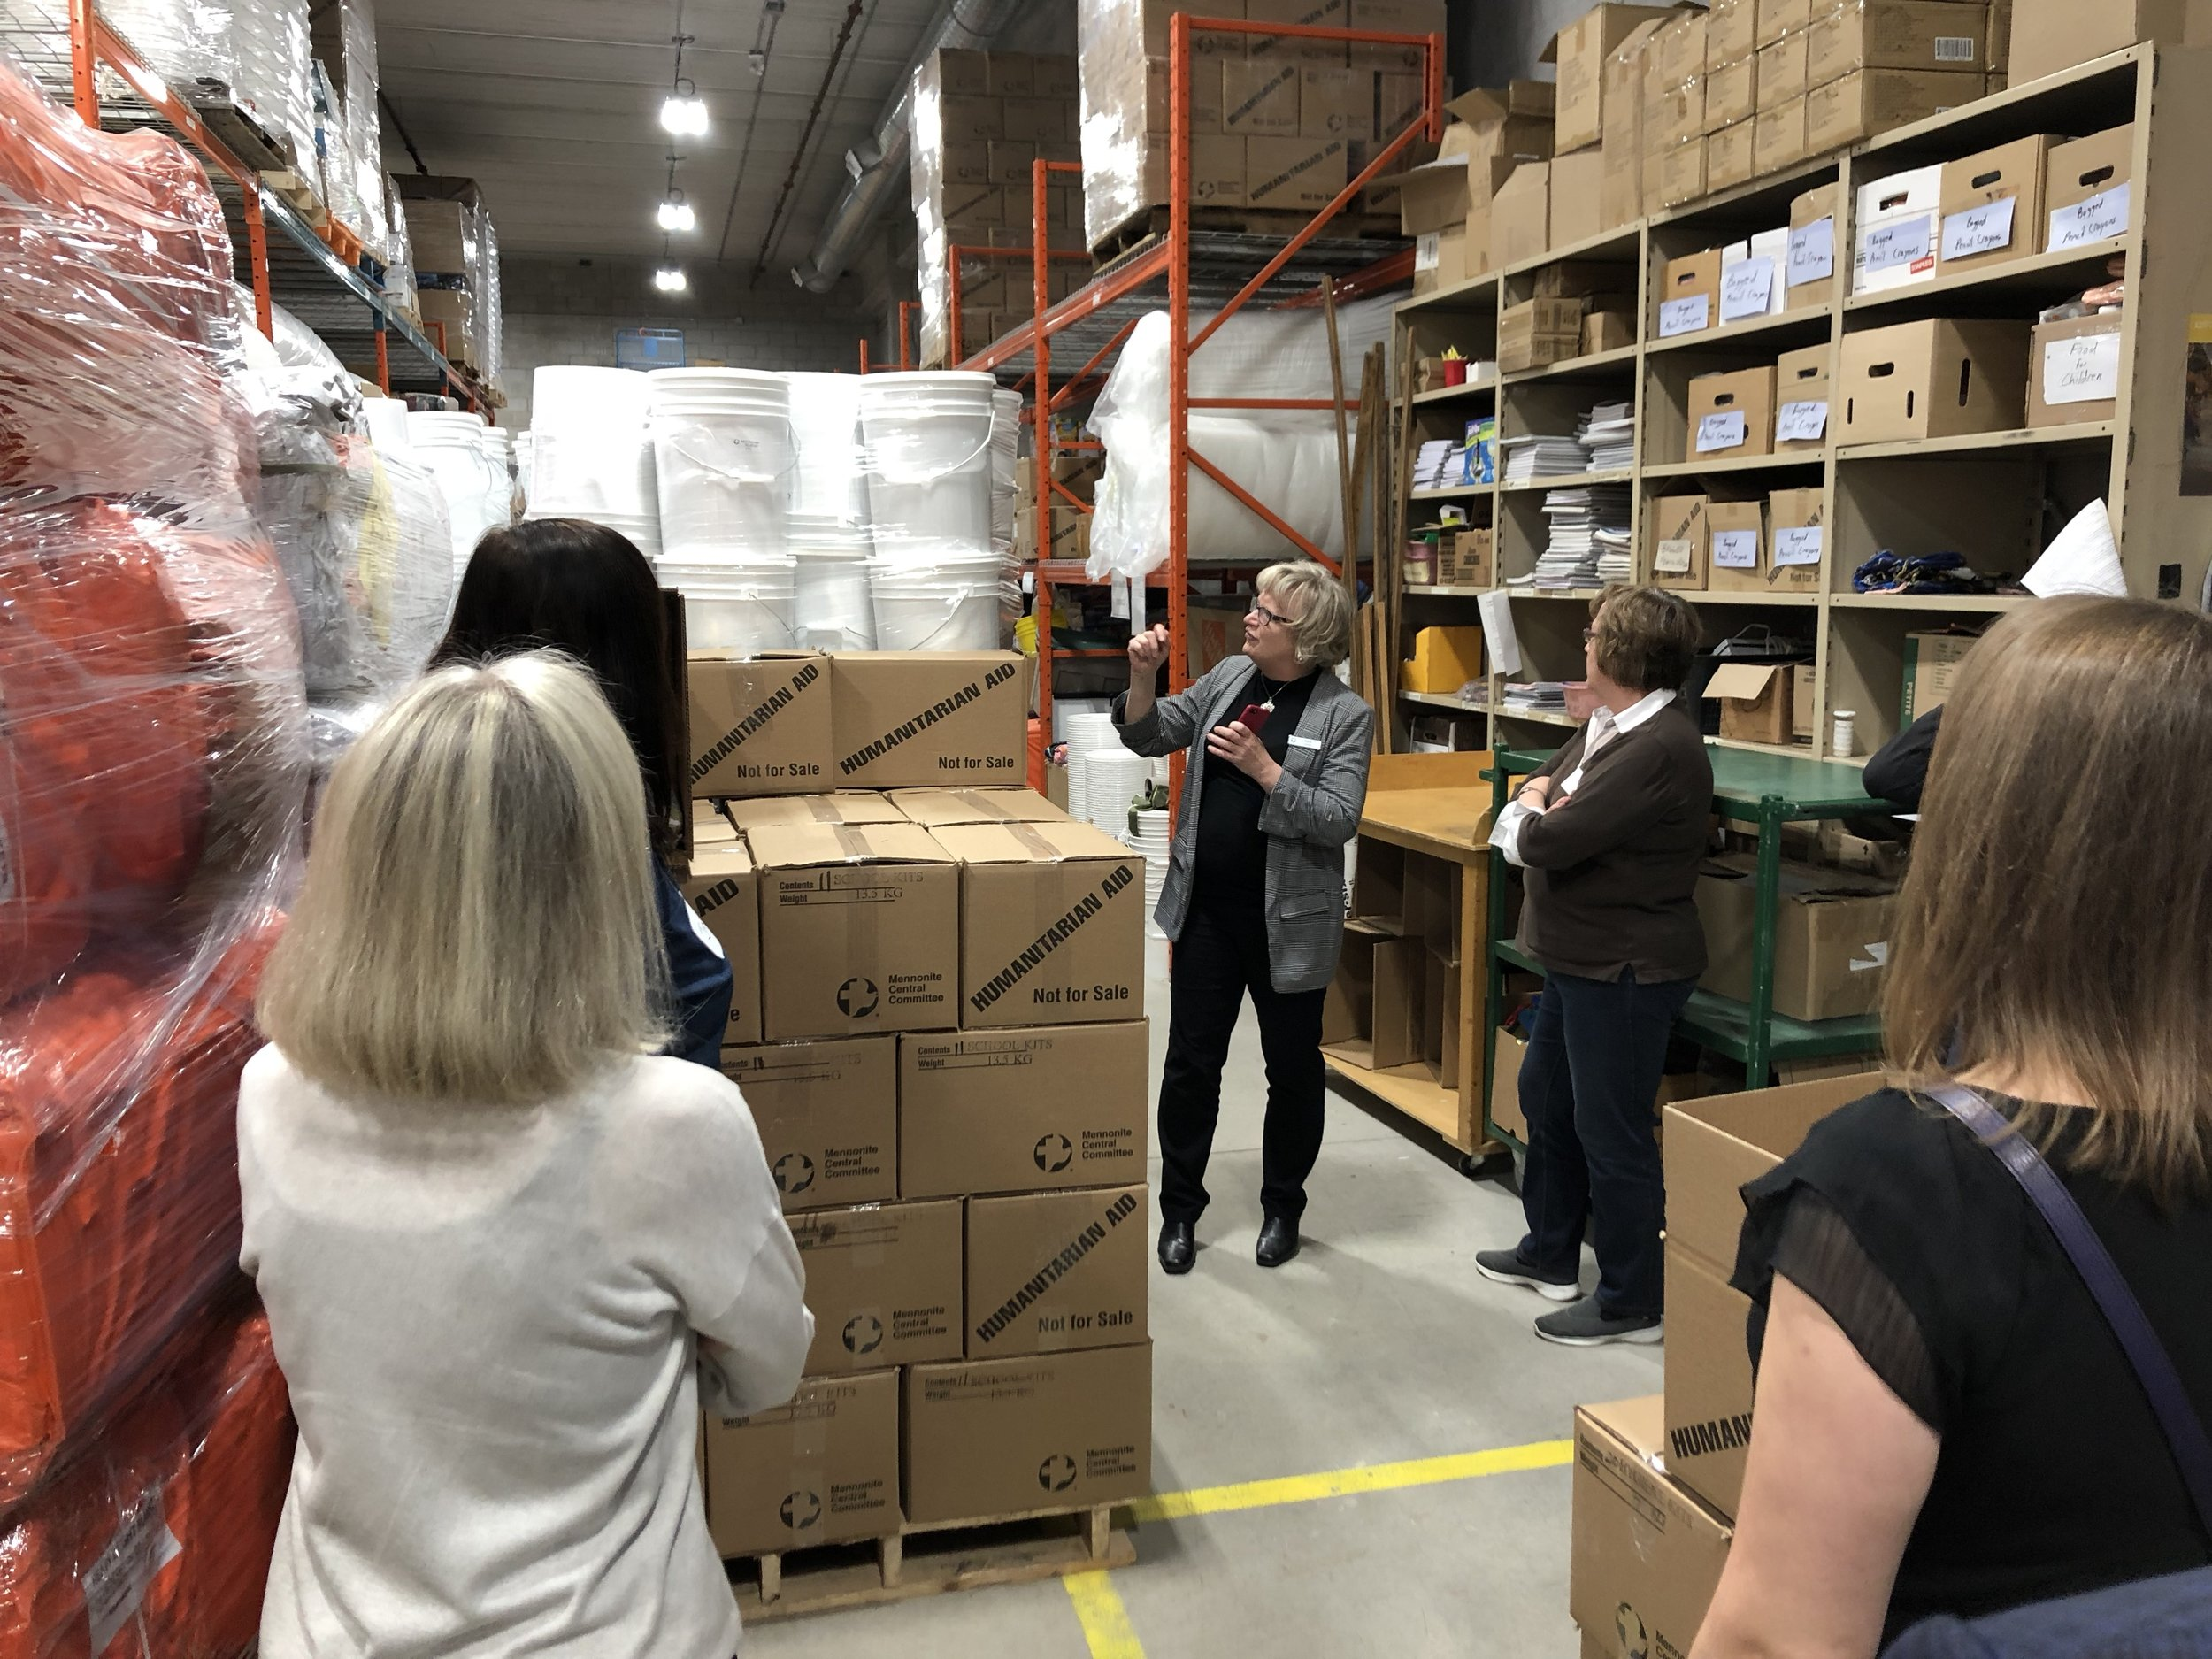 Associate Executive Director Kim Lester showing the group a shipment of relief kits, set to ship overseas just days after our site visit.